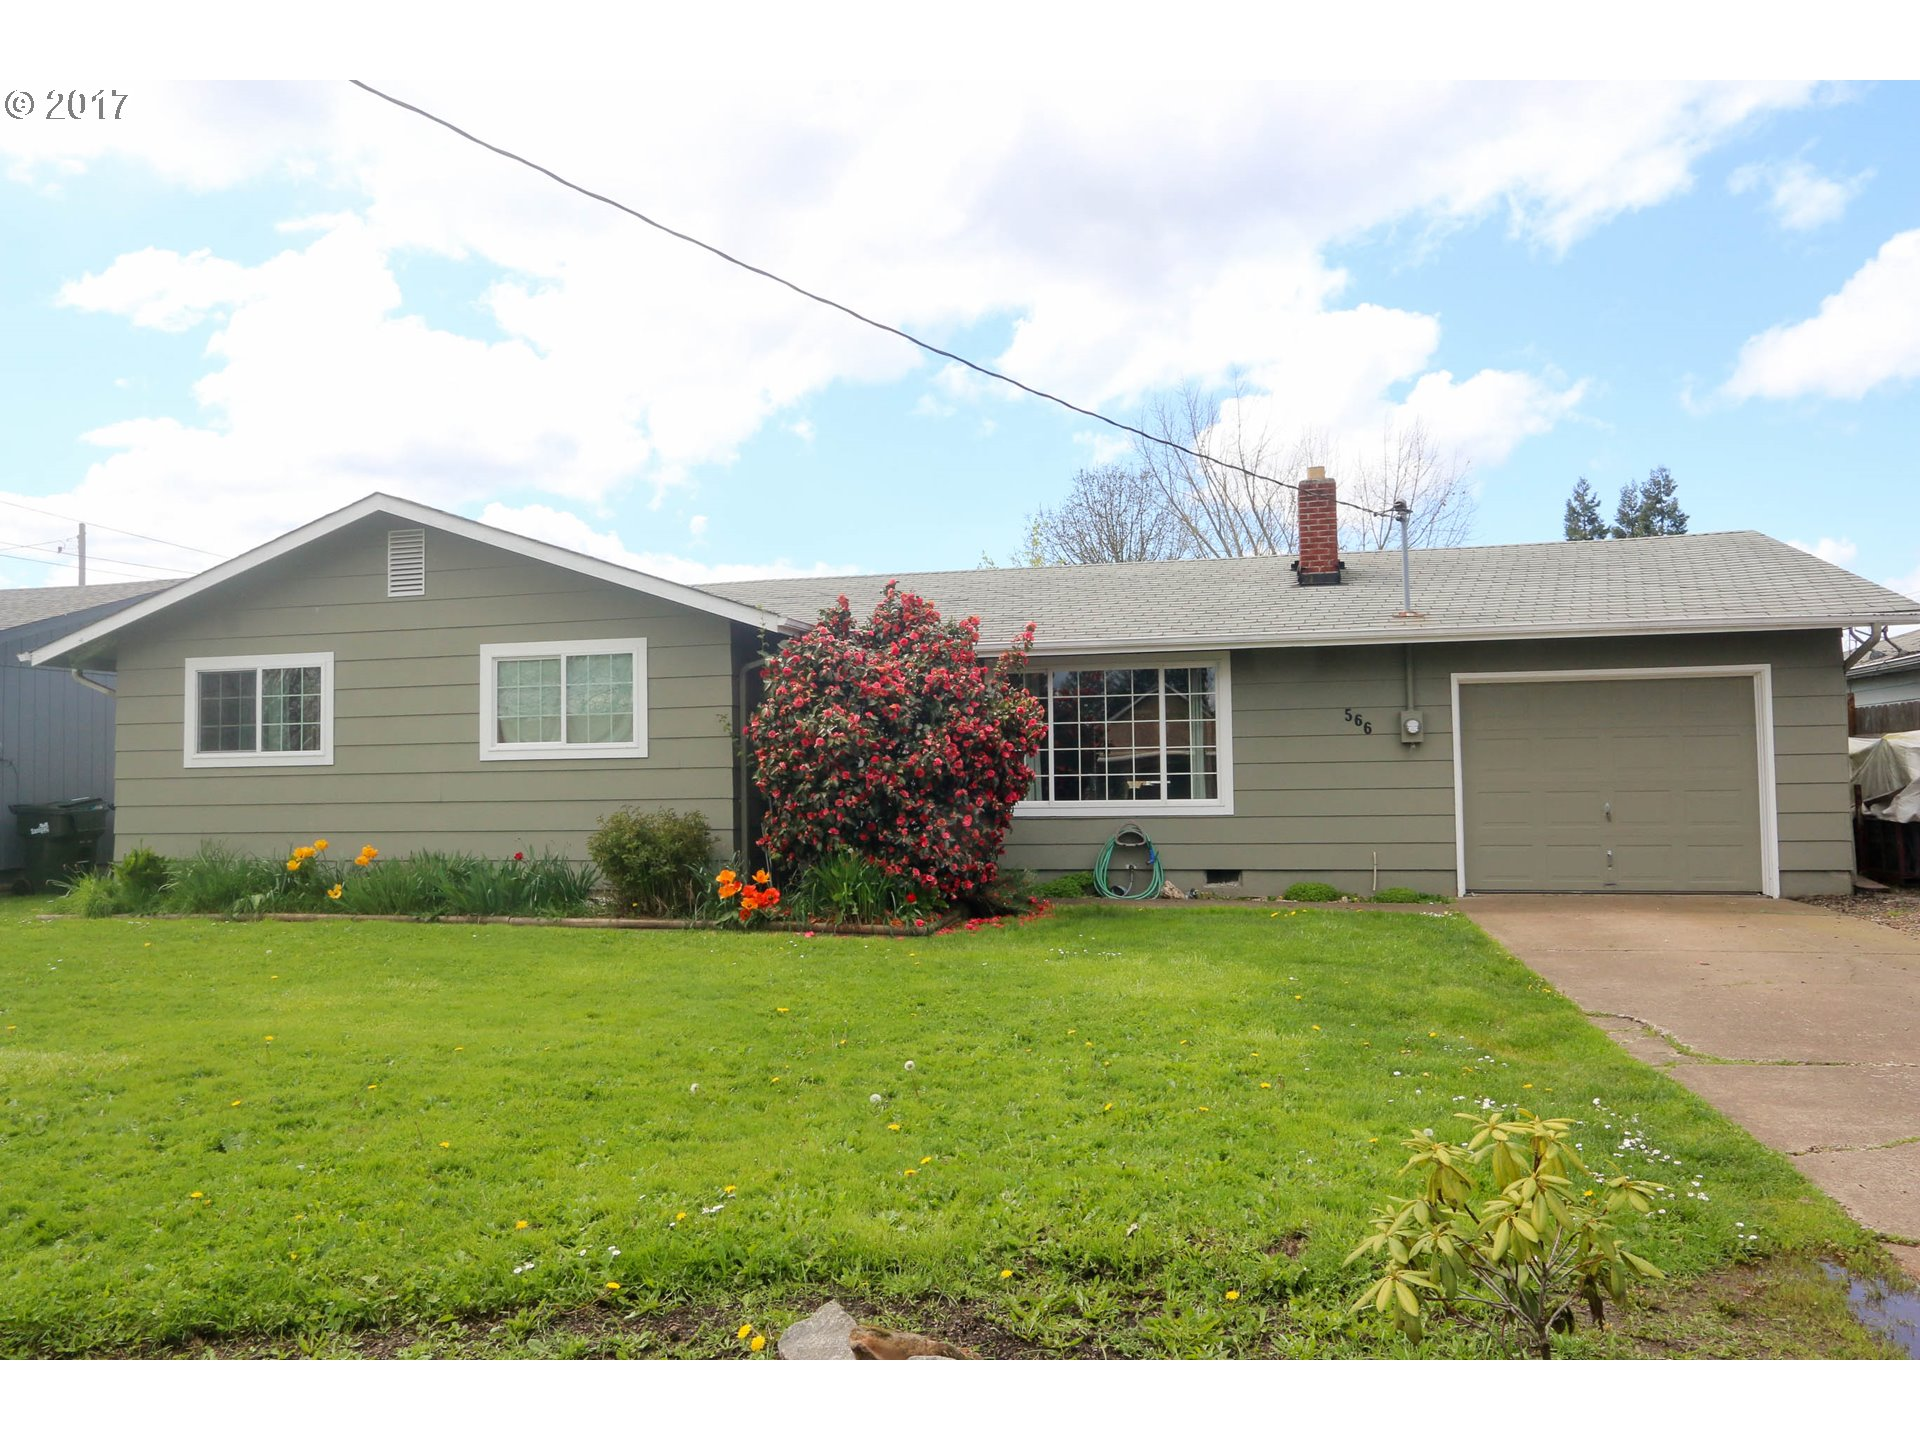 566 38TH ST, Springfield, OR 97478